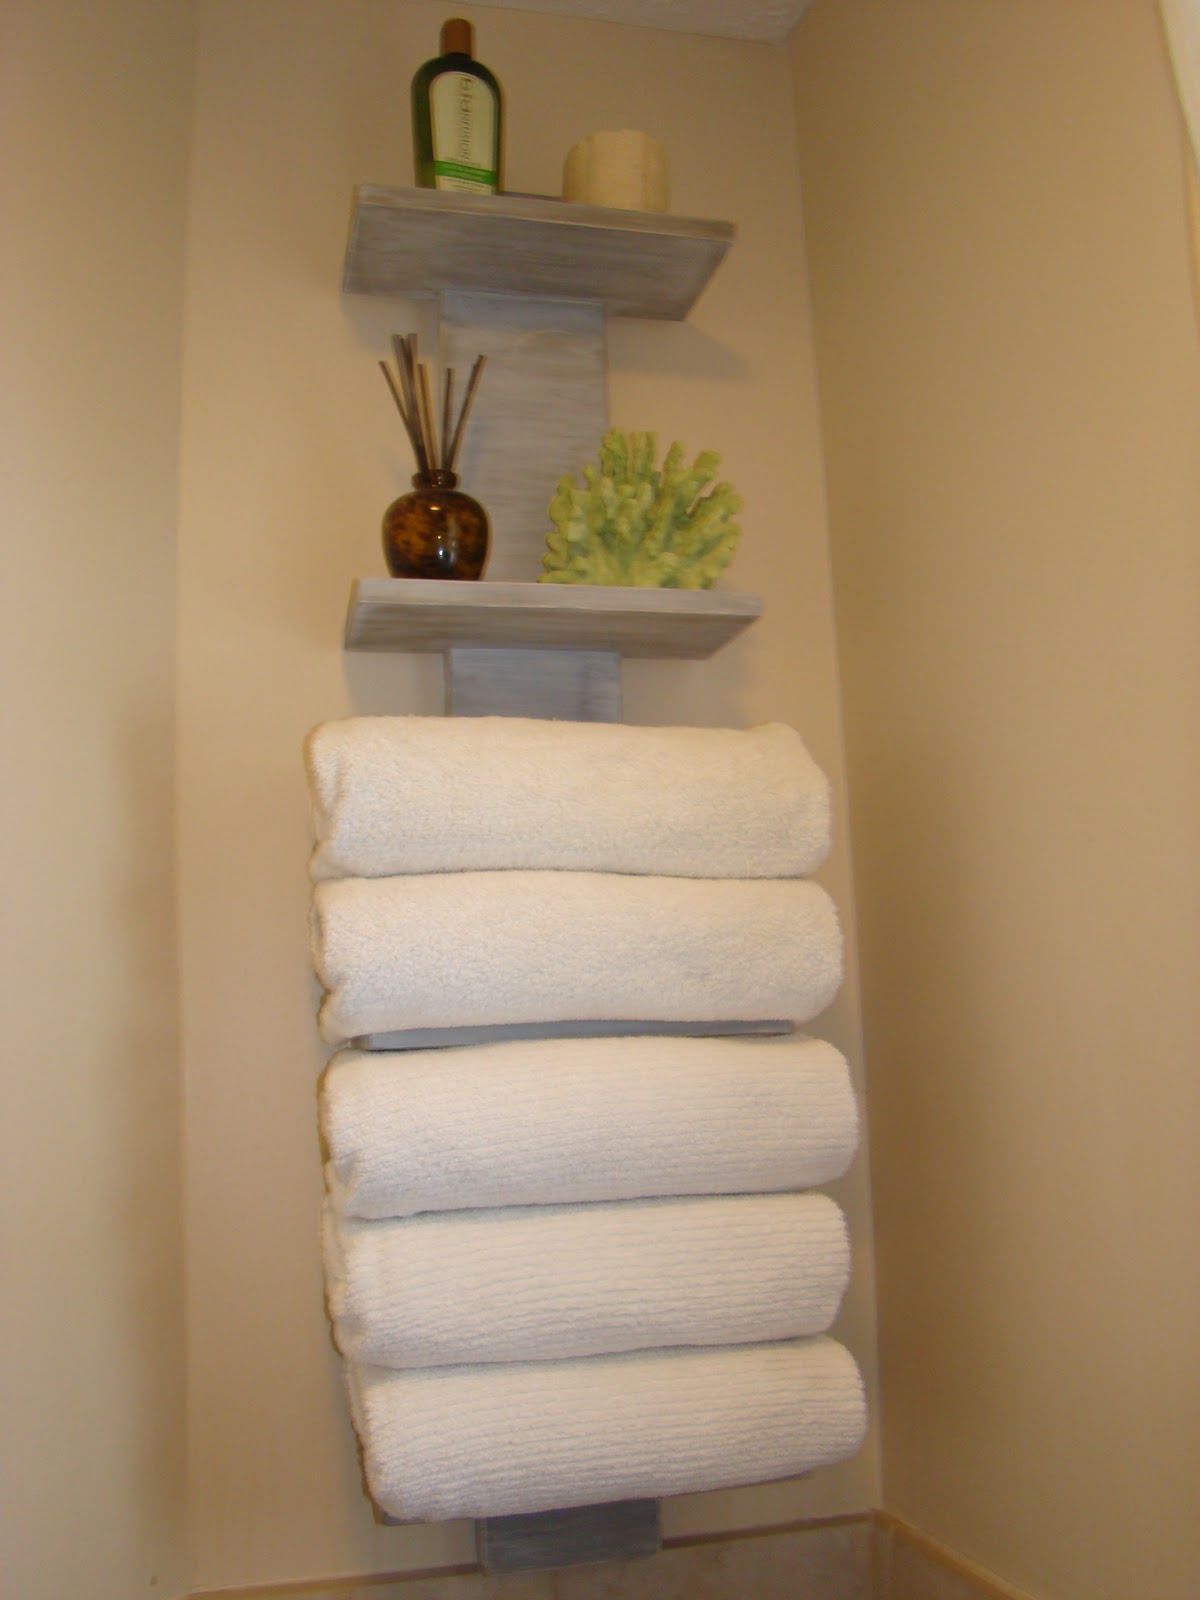 Decorative towel Racks for Bathrooms Lovely Storage for towels In Bathroom